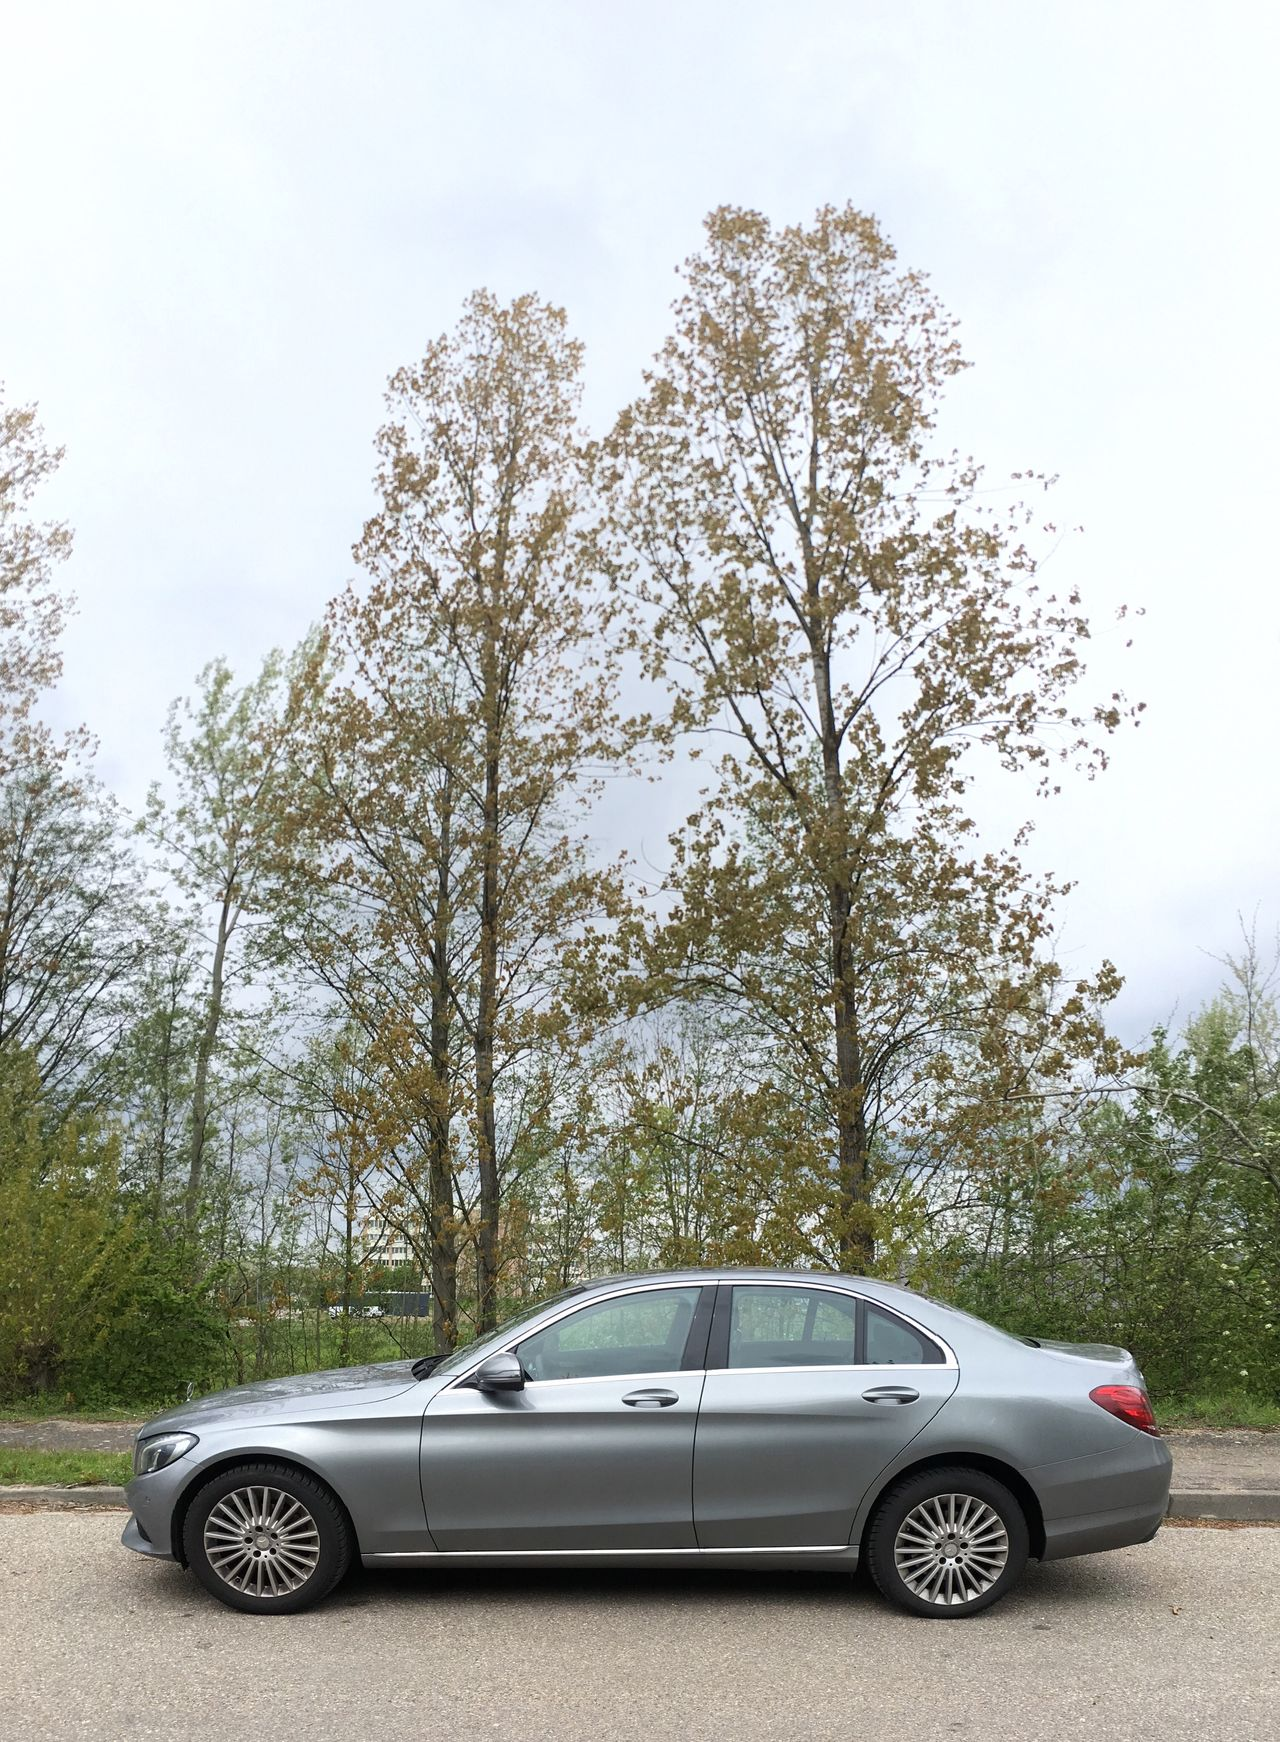 …back in Germersheim w/ this #C220!